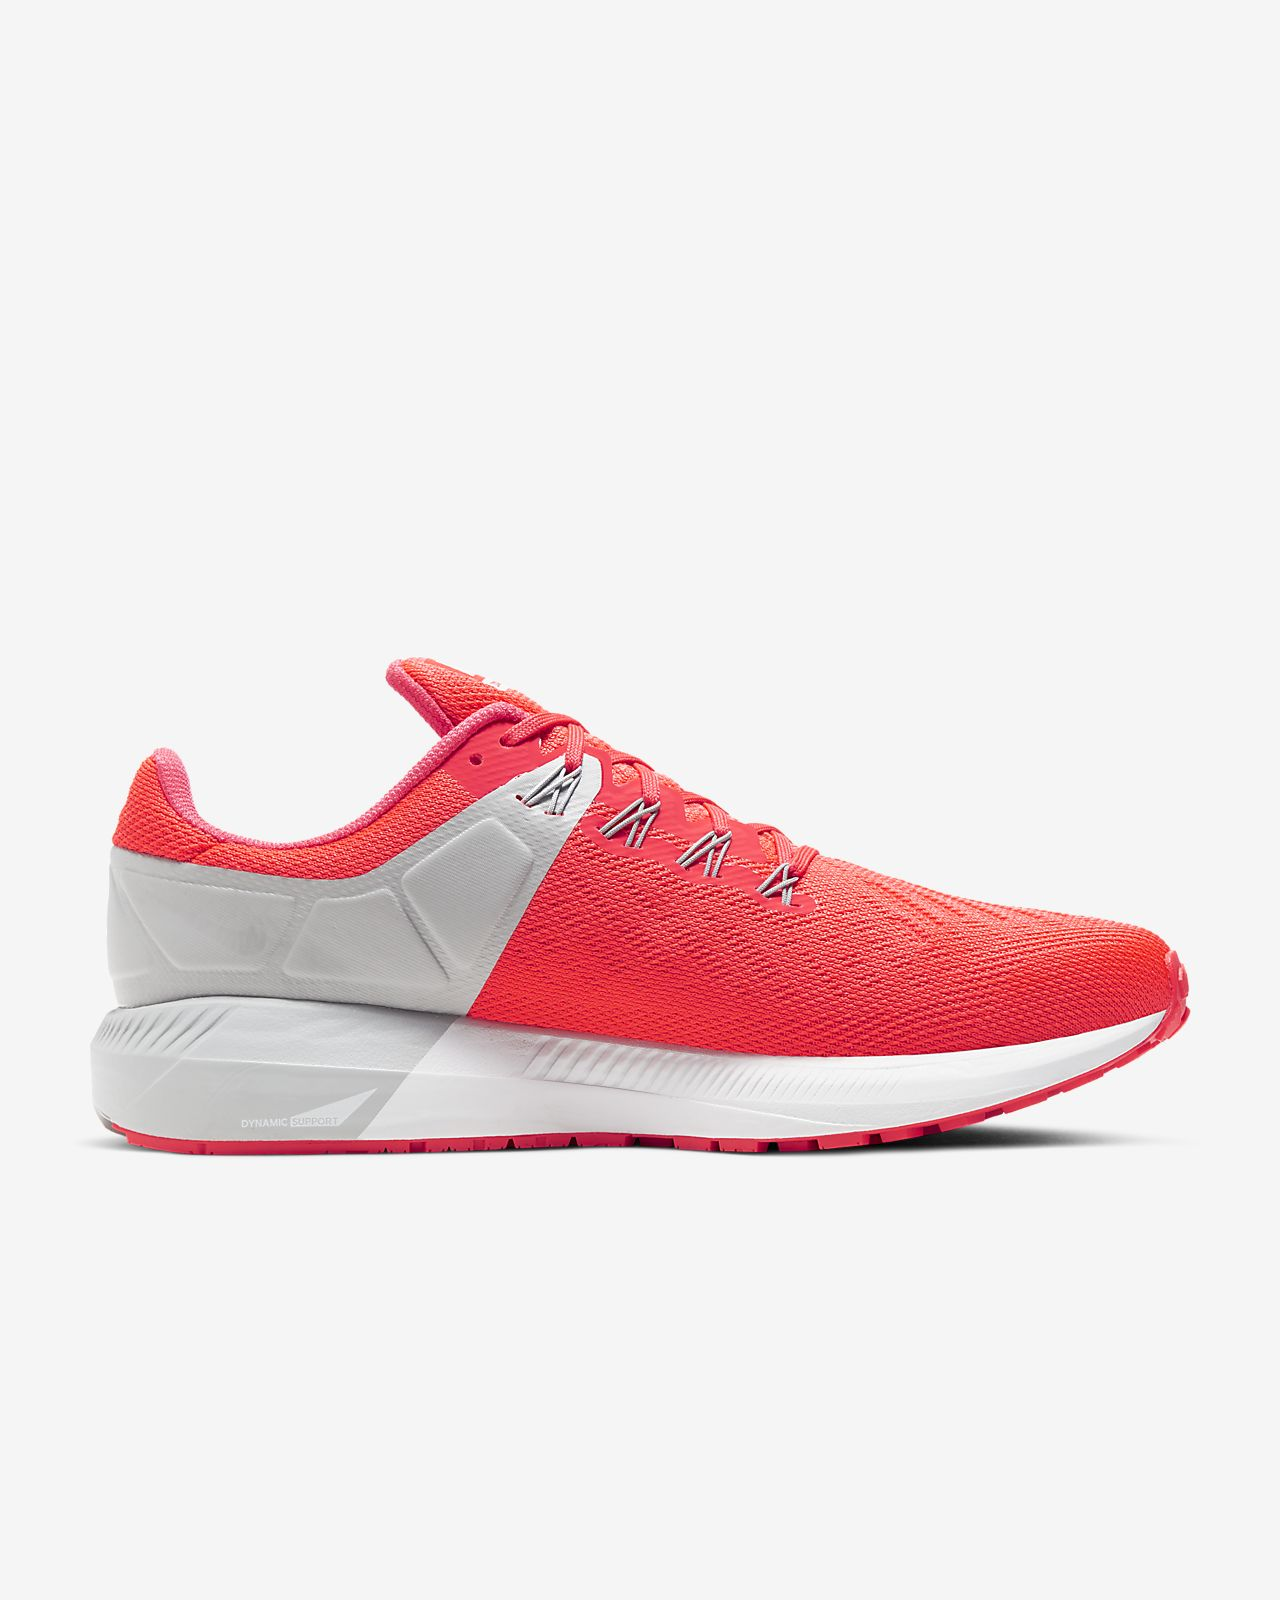 super popular detailed look order Chaussure de running Nike Air Zoom Structure 22 pour Homme. Nike CA